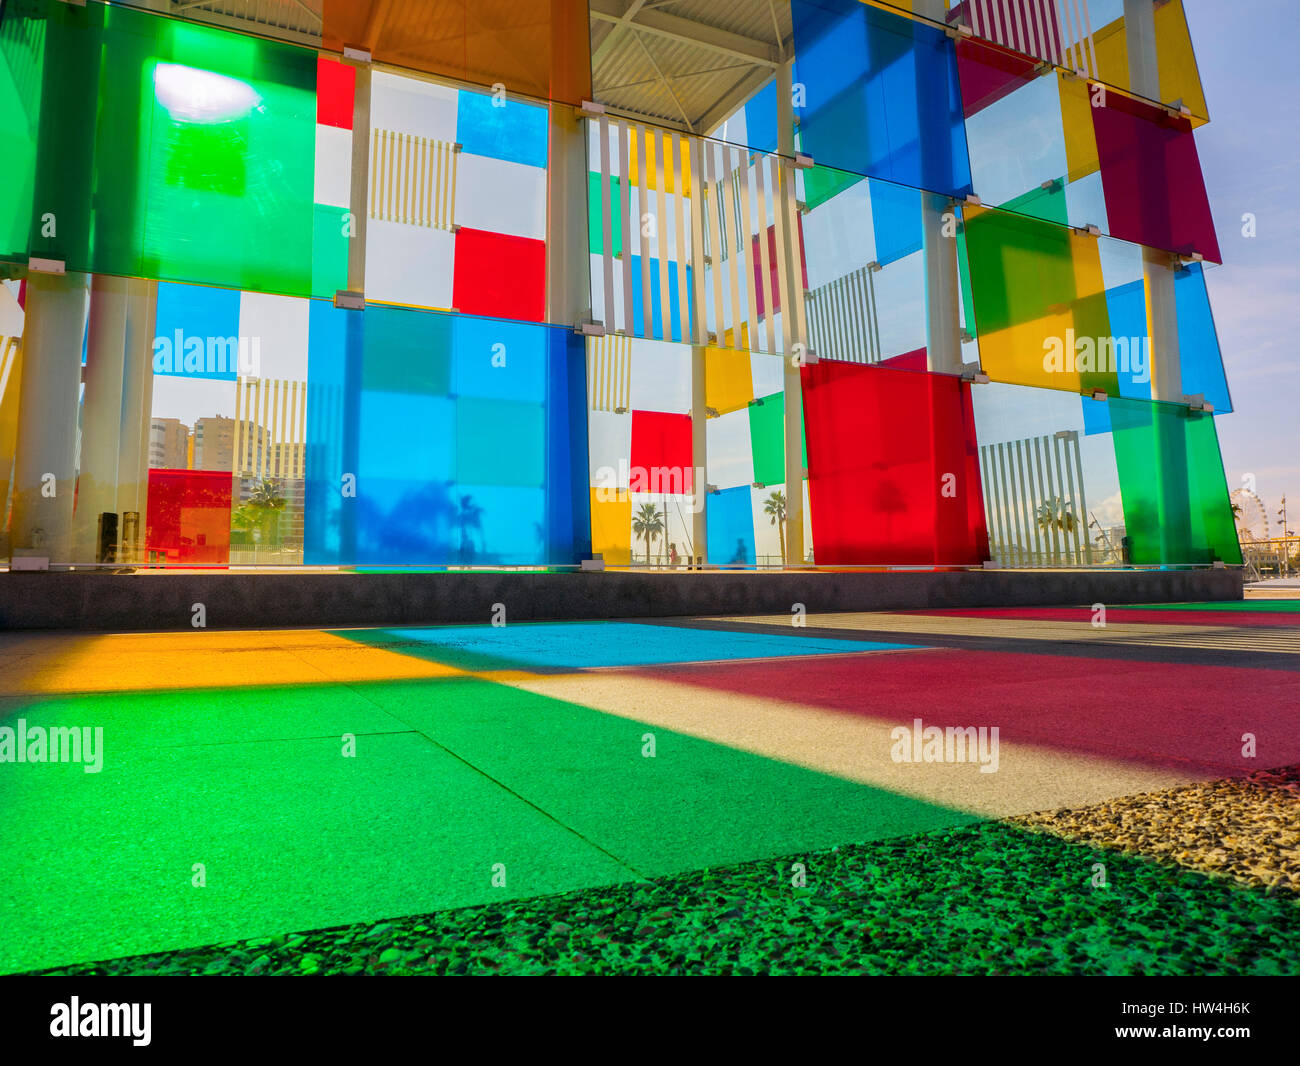 Centre Pompidou Museum modern art. Costa del Sol, Malaga. Andalusia southern Spain. Europe - Stock Image